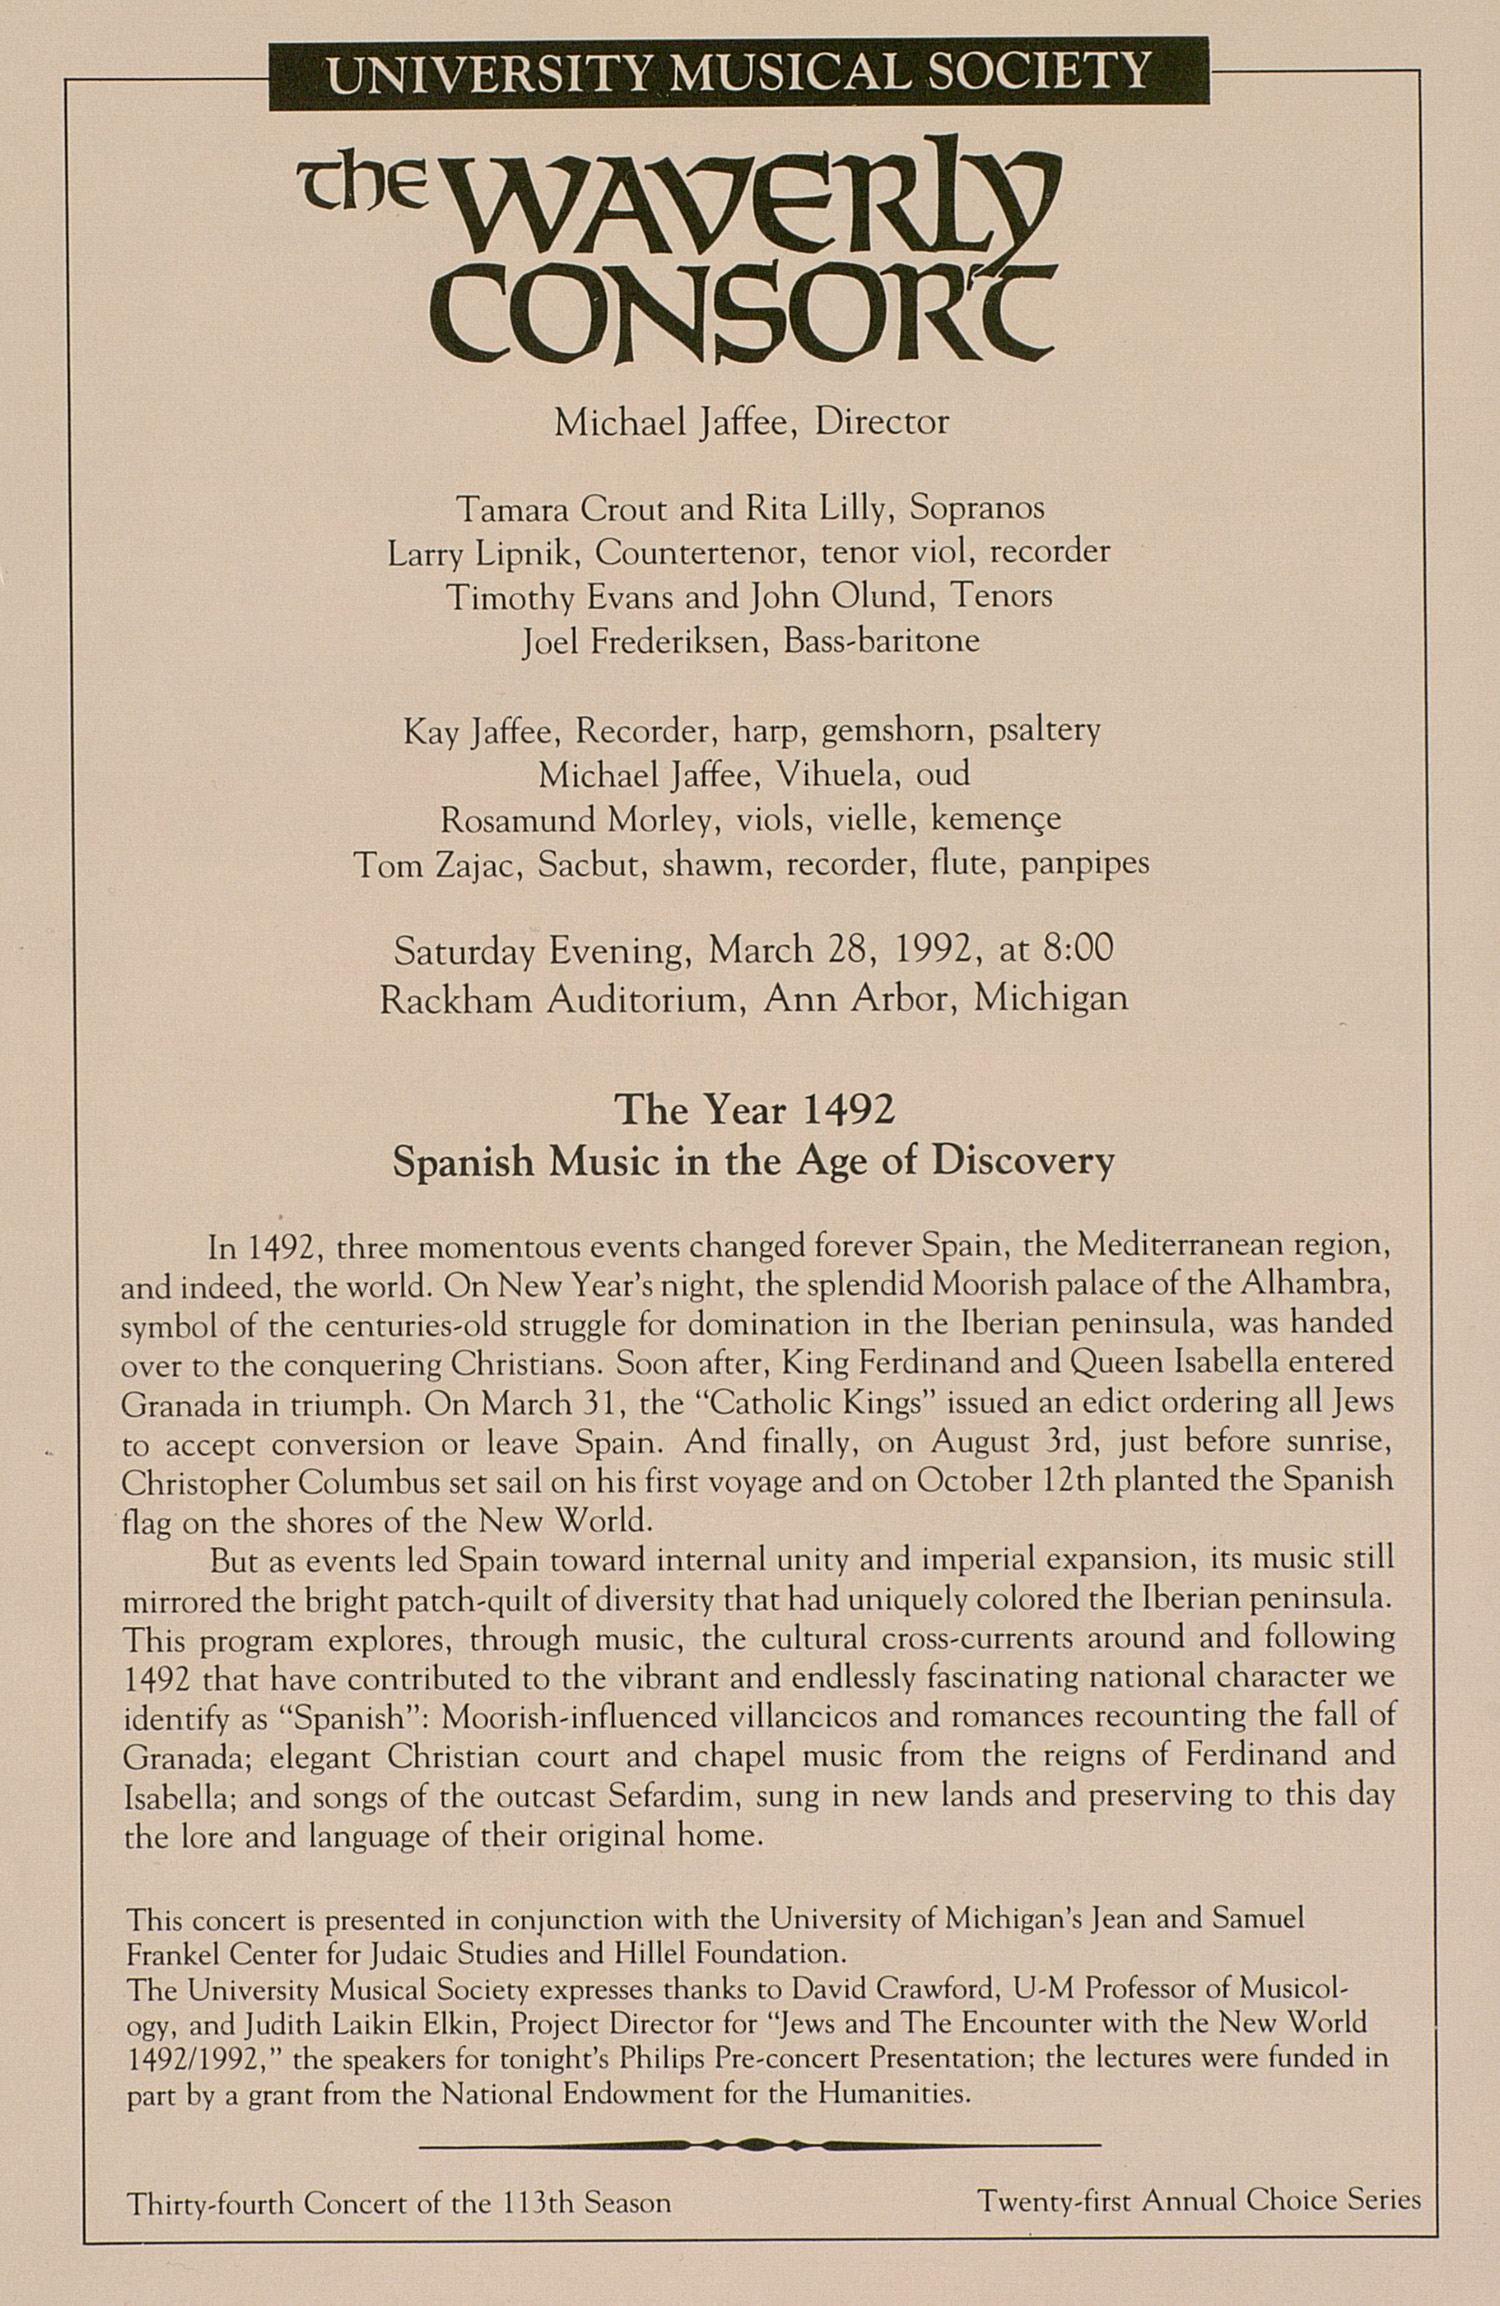 UMS Concert Program, March 28, 1992: The Waverly Consort --  image